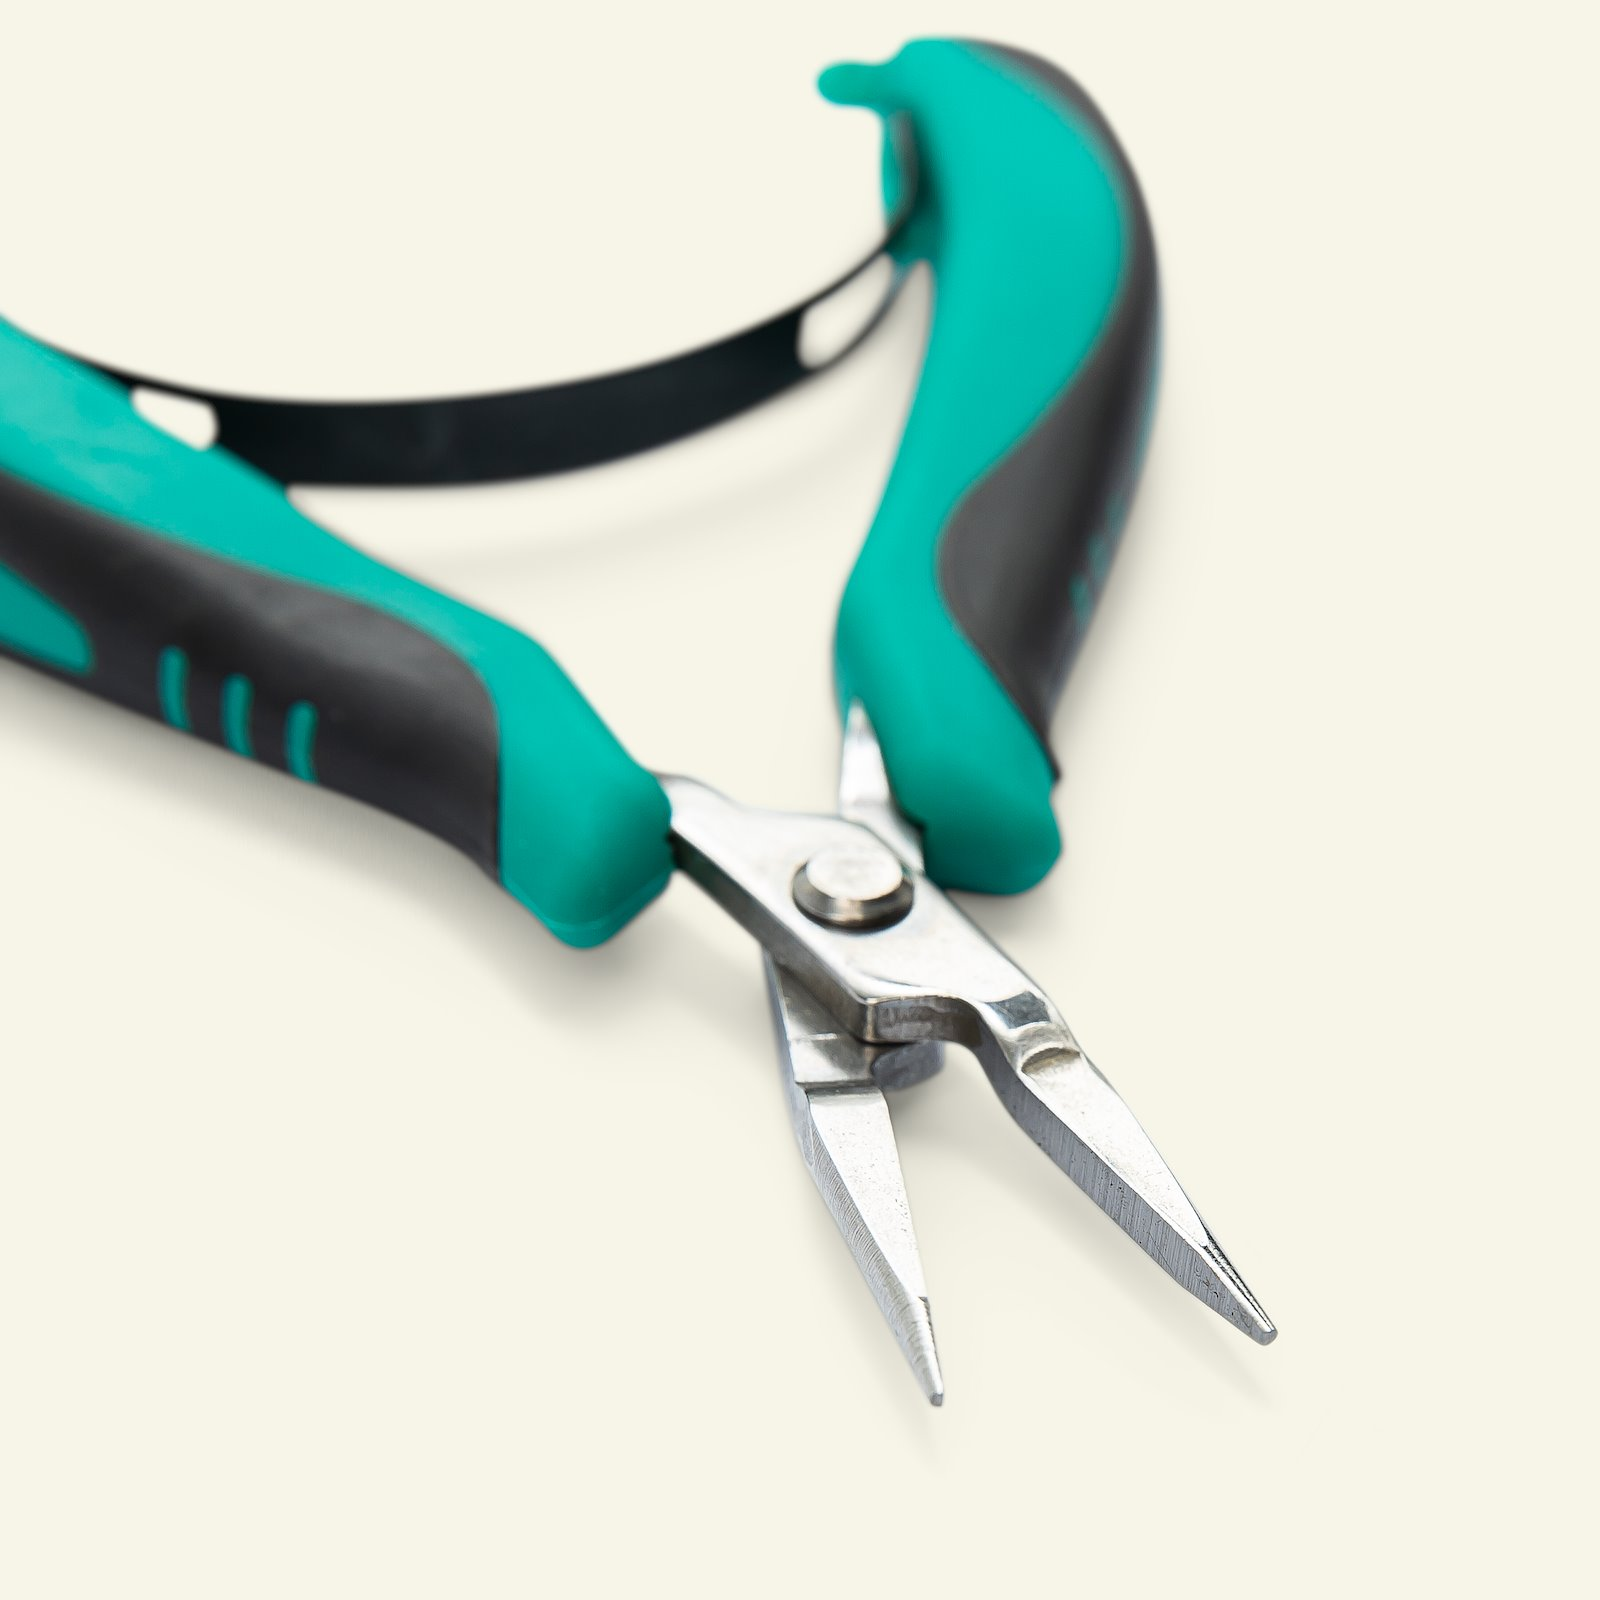 Plier flat nose for jewellery making 1pc 74106_pack_c